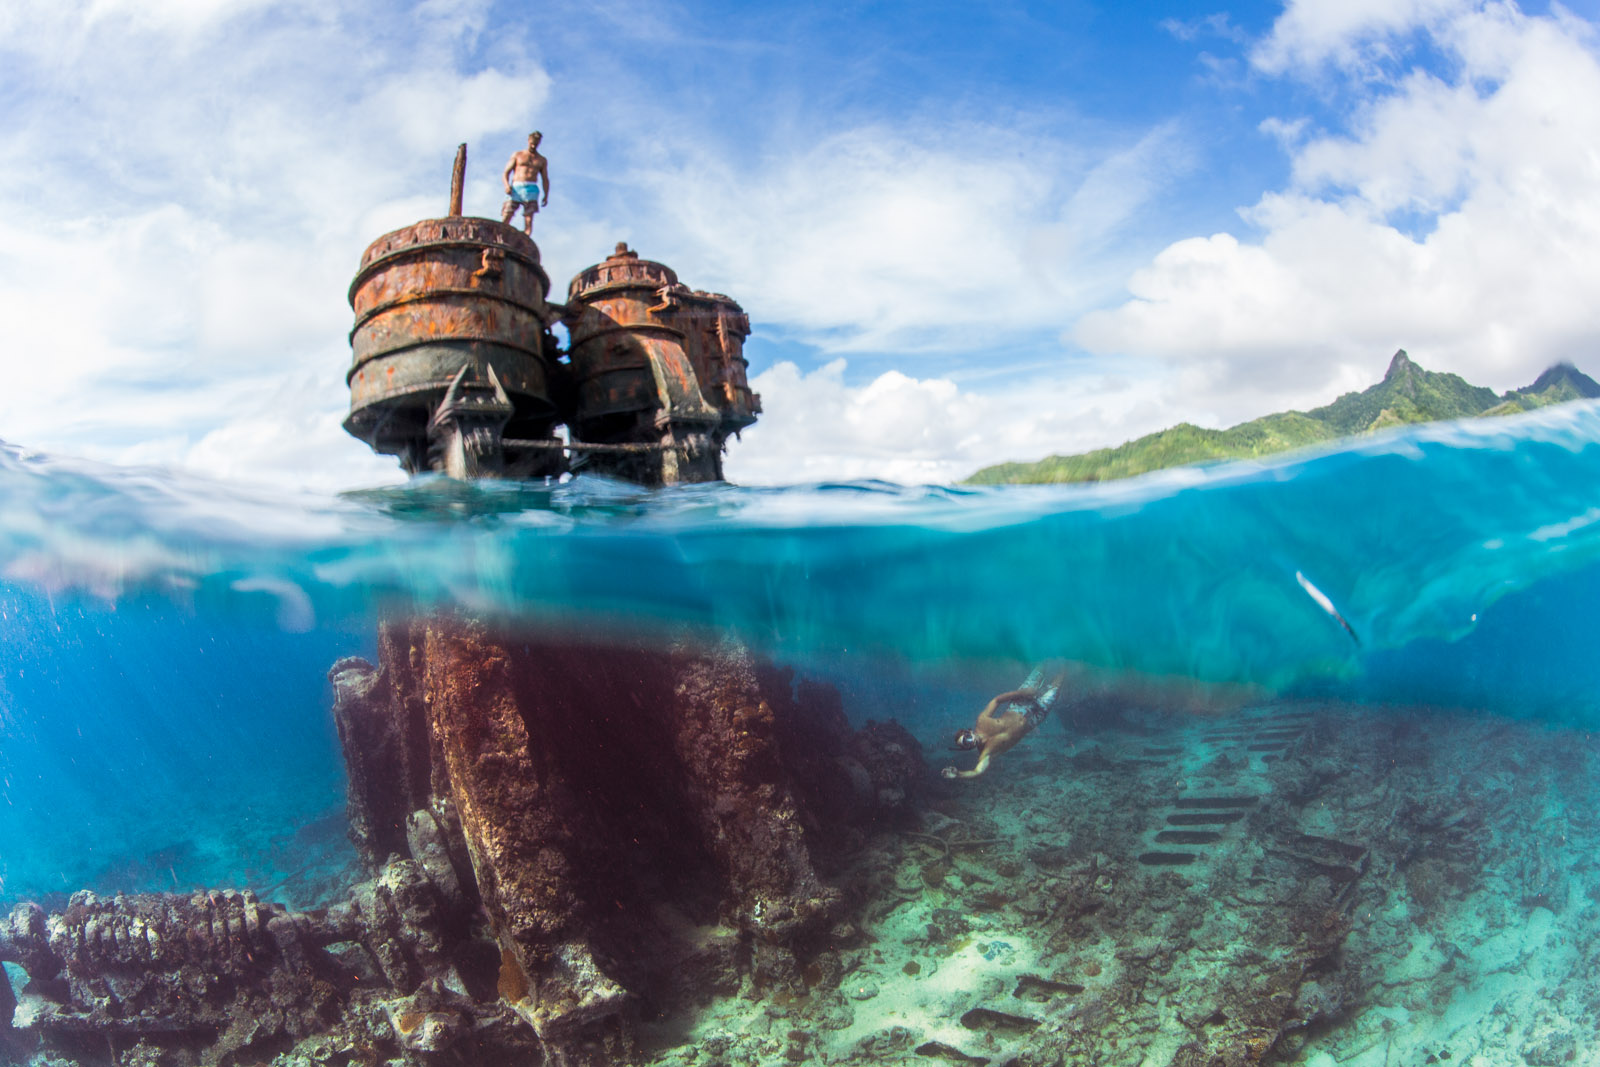 ss mai tai, shipwreck, diving, snorkeling, rarotonga, cook islands, sailing adventure, wanderlust, pacific, uw, uwphoto, underwater, underwater photo, underwater photographer, anhede, undervattensfotograf, undervattensfoto